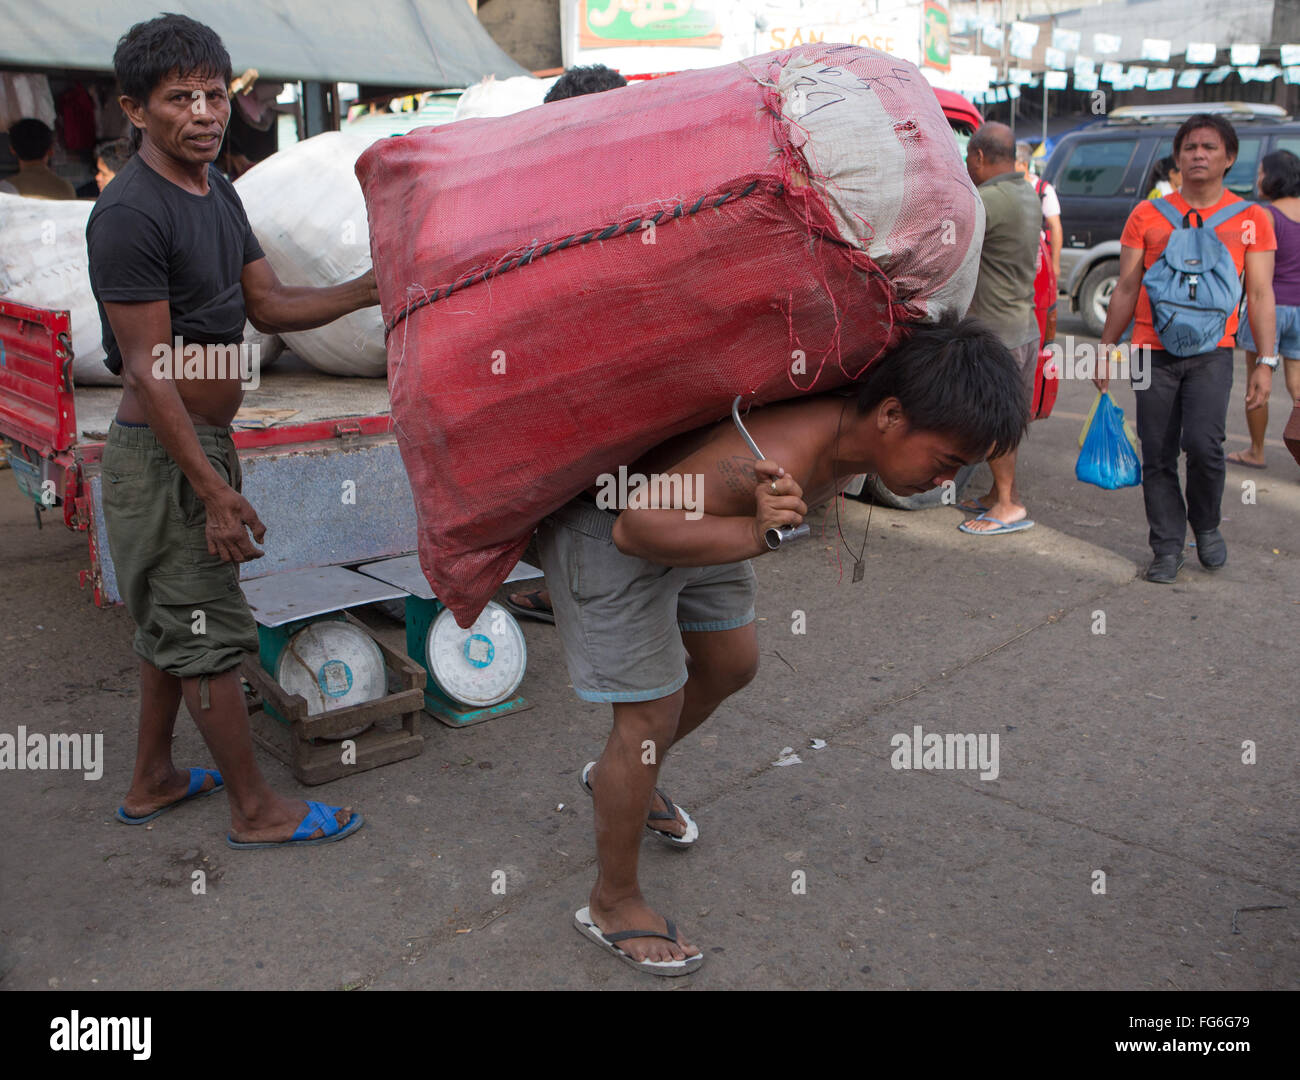 A heavy load being carried by a Filipino man within the Carbon Market located in Downtown Cebu City ,Philippines - Stock Image